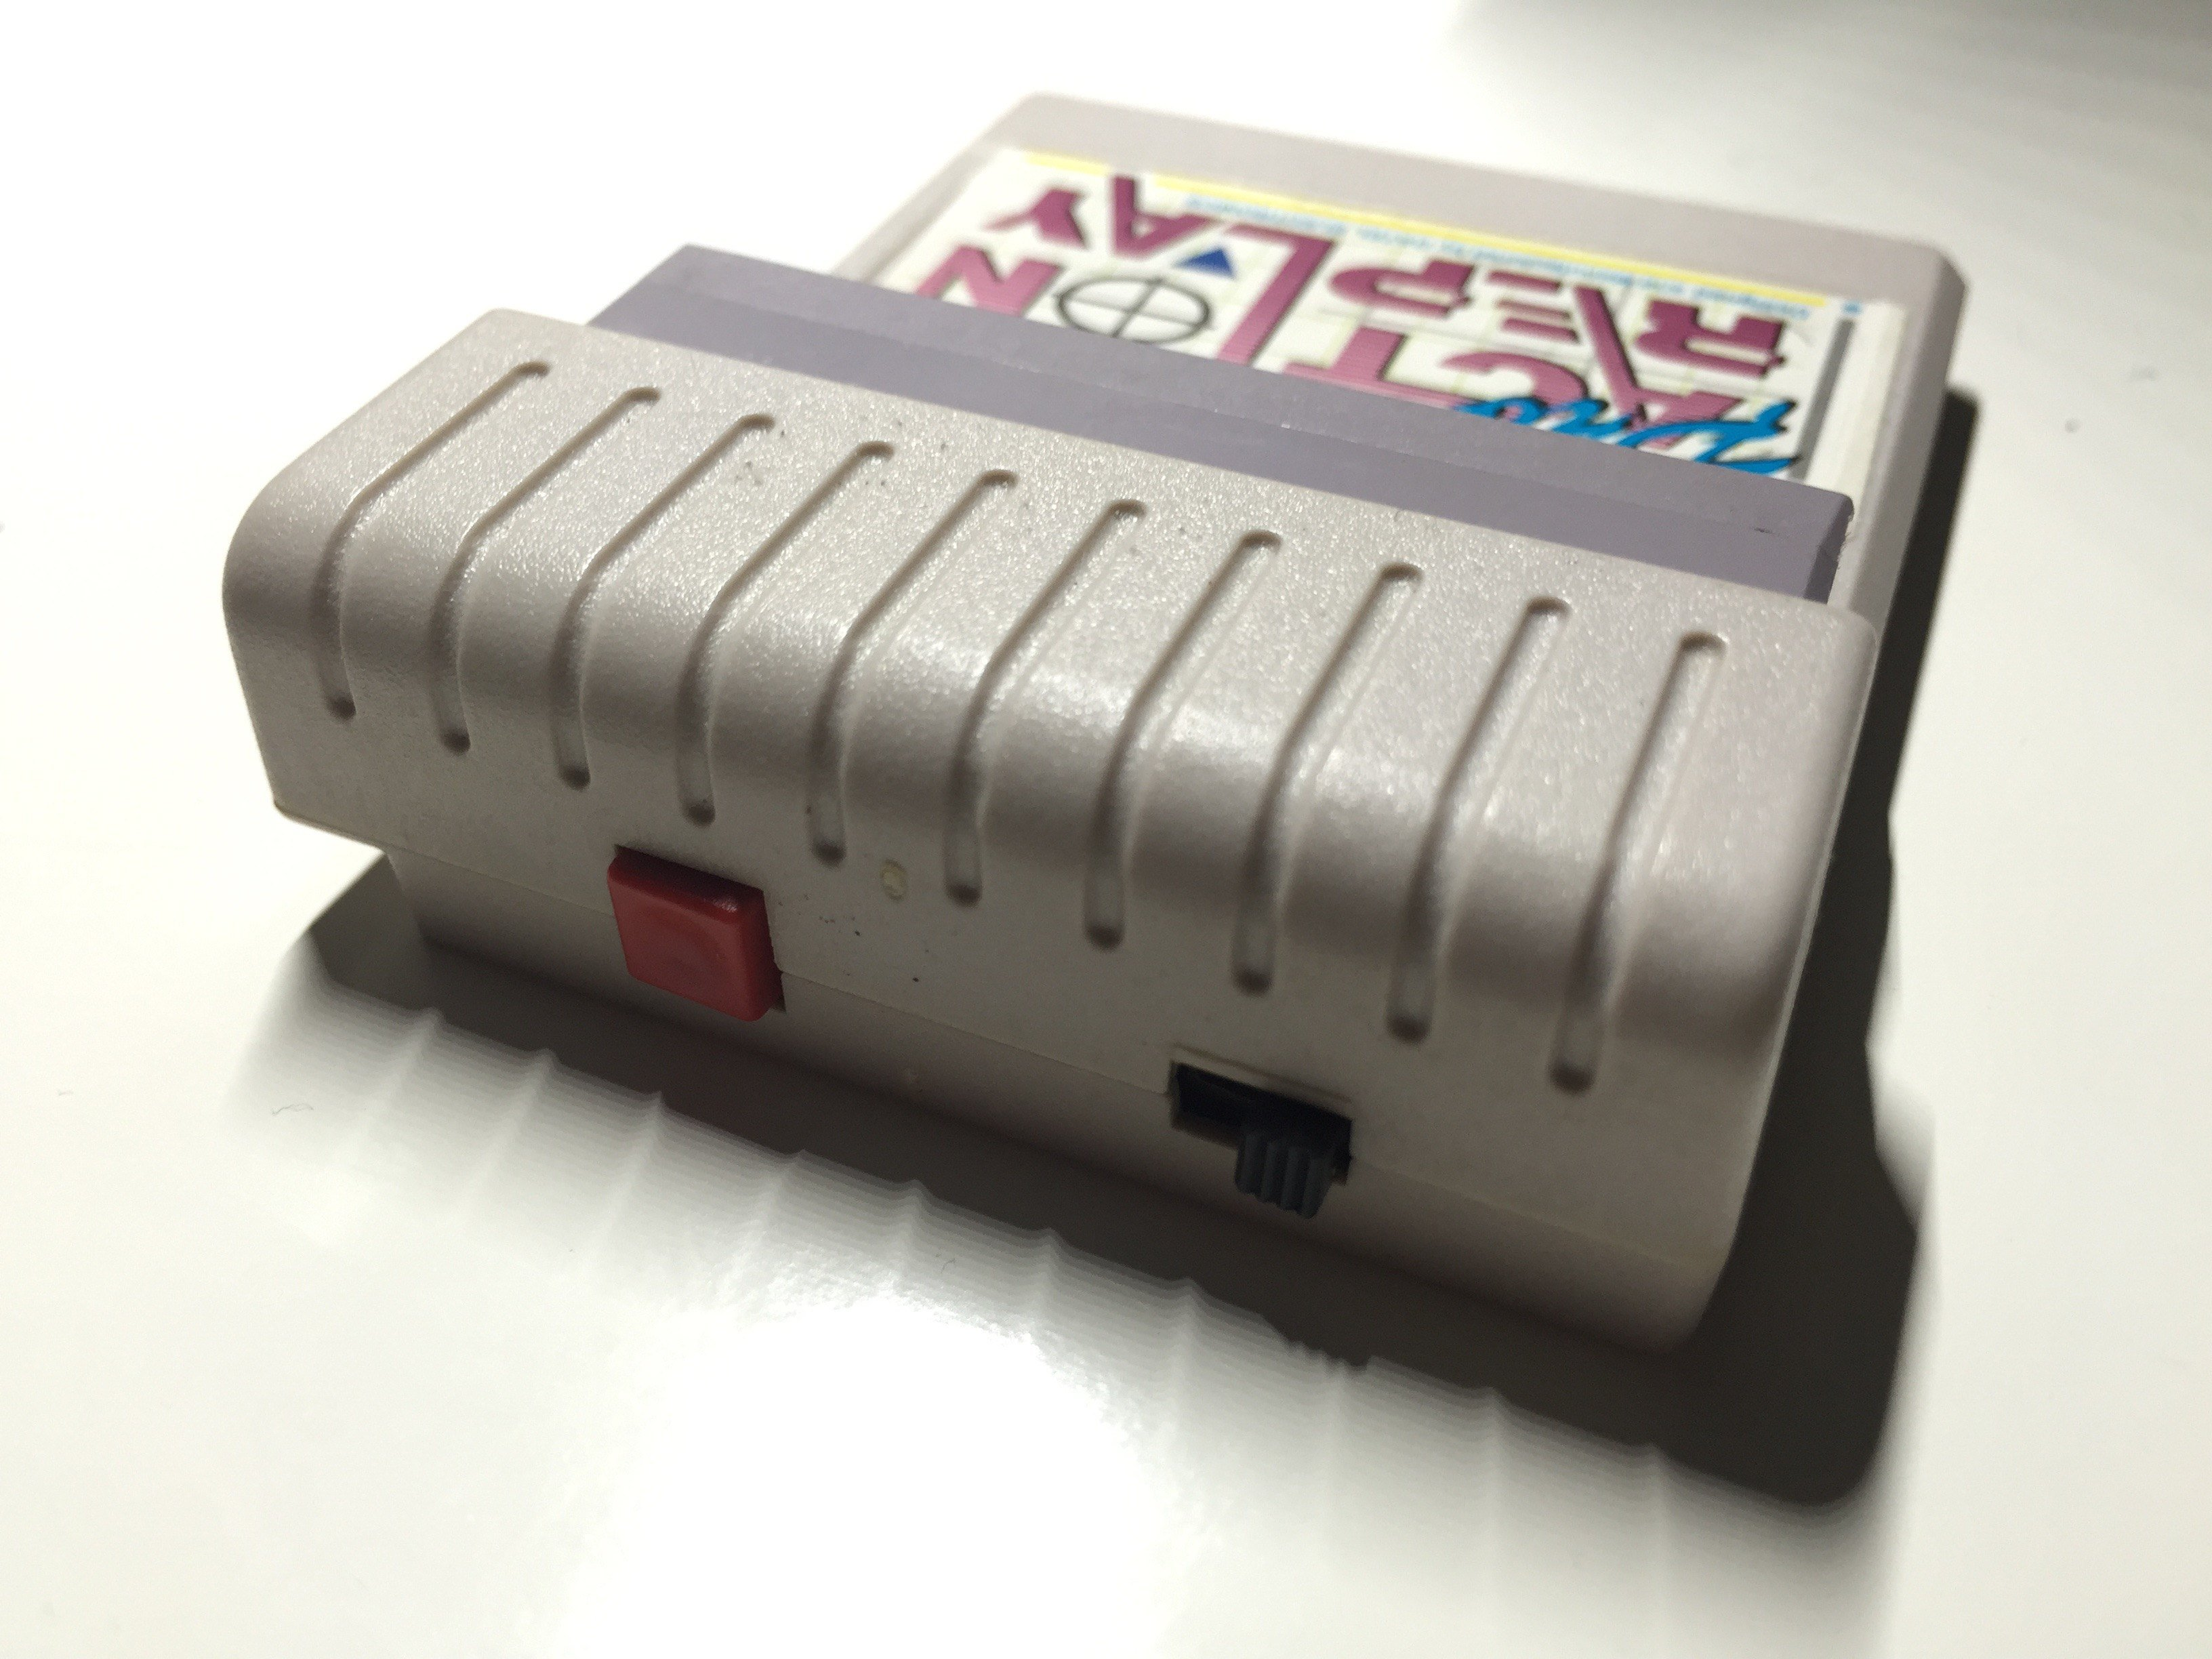 Game boy color game genie codes - The Red Button And Black Switch The Button Resets The Console